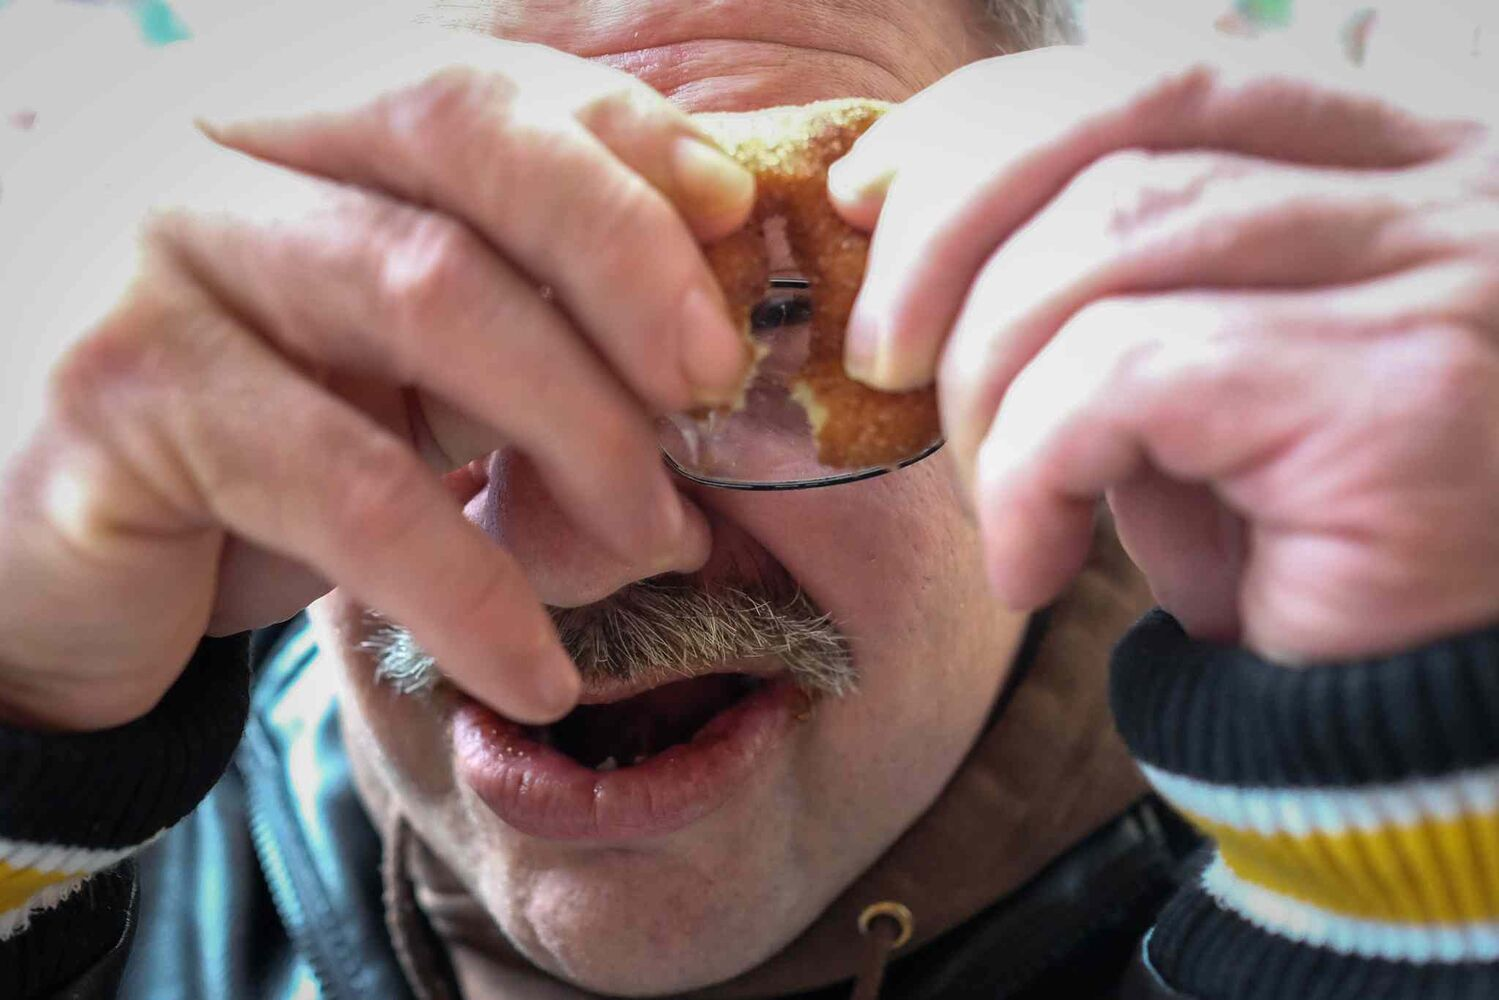 Whenever Cathy and Tom go to The Forks they get mini-donuts as a treat. Tom loves his mini-donuts. MIKE DEAL / WINNIPEG FREE PRESS